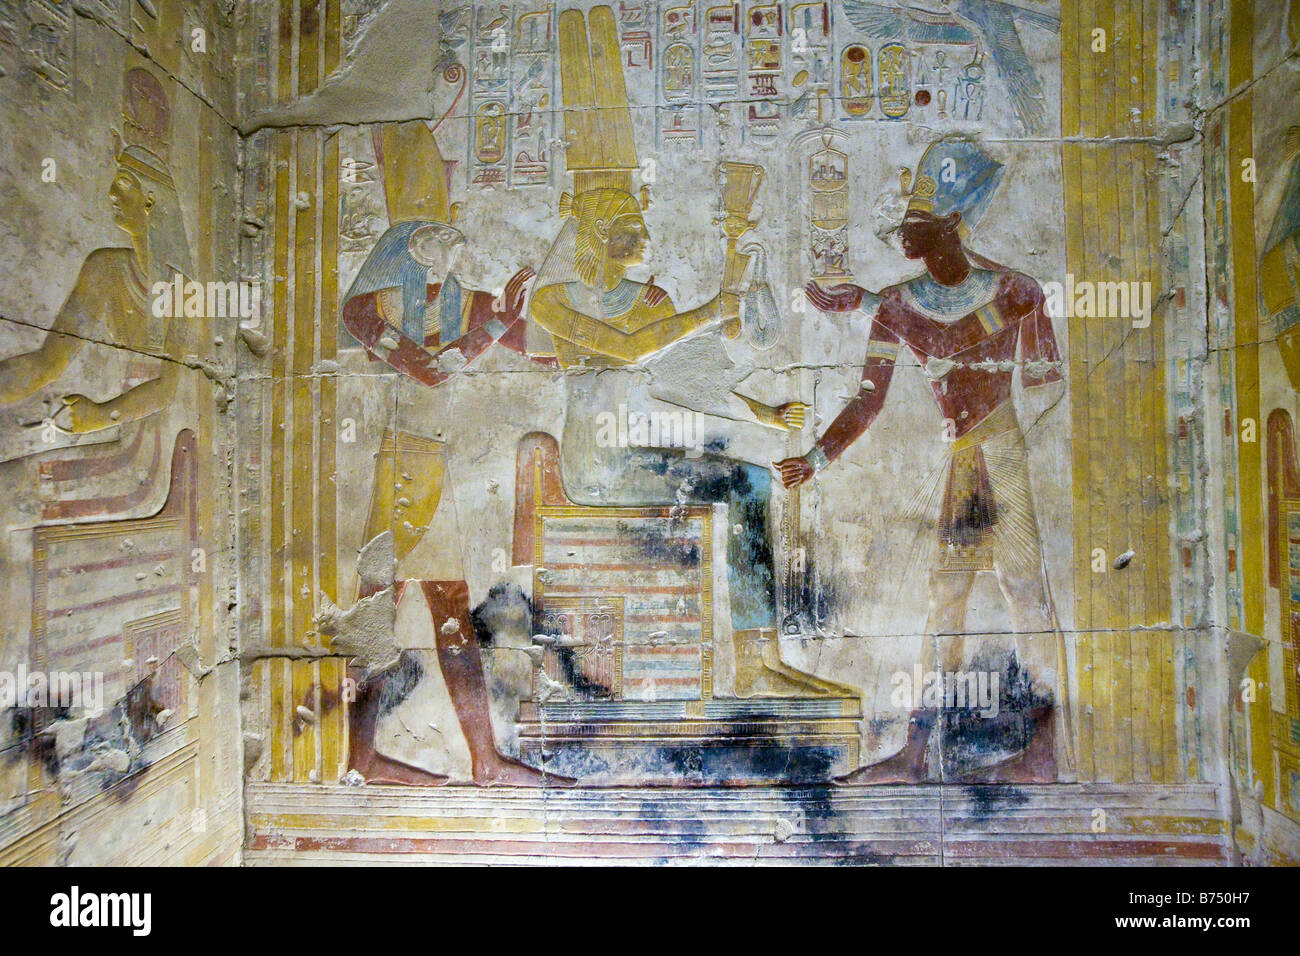 Relief work from the Temple of Seti I at Abydos, Nile Valley Egypt - Stock Image